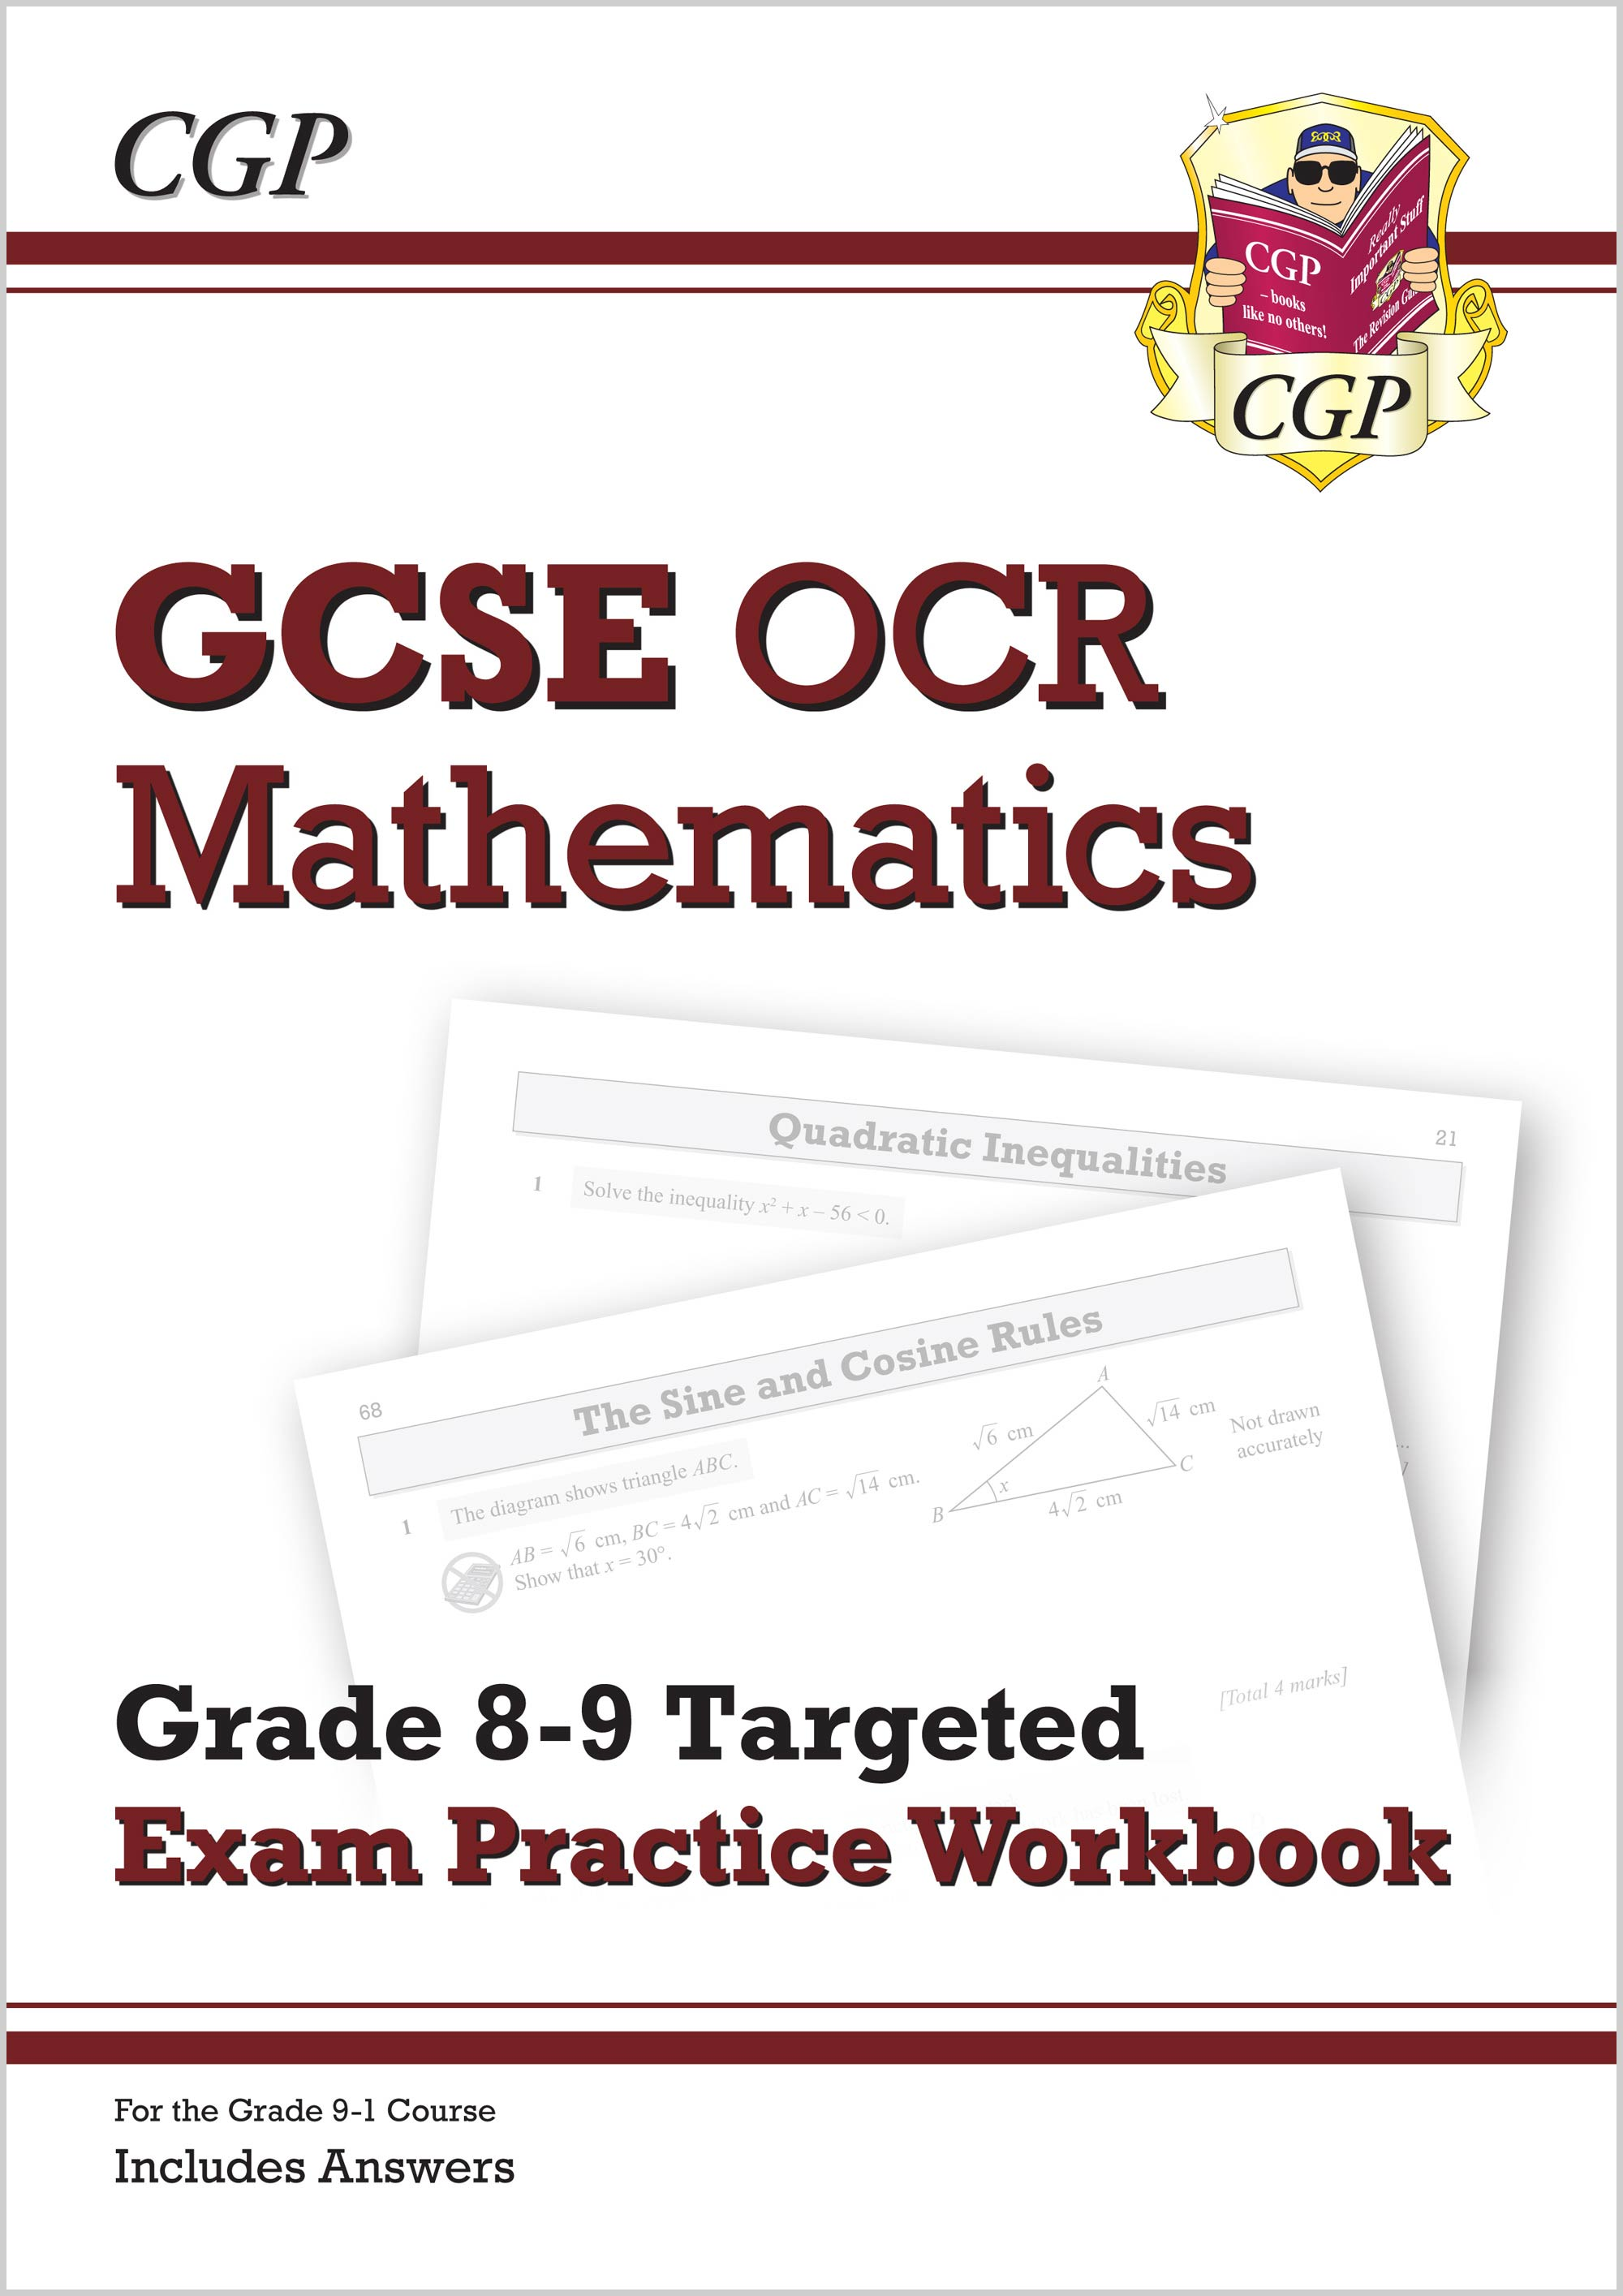 MC9Q42 - GCSE Maths OCR Grade 8-9 Targeted Exam Practice Workbook (includes Answers)